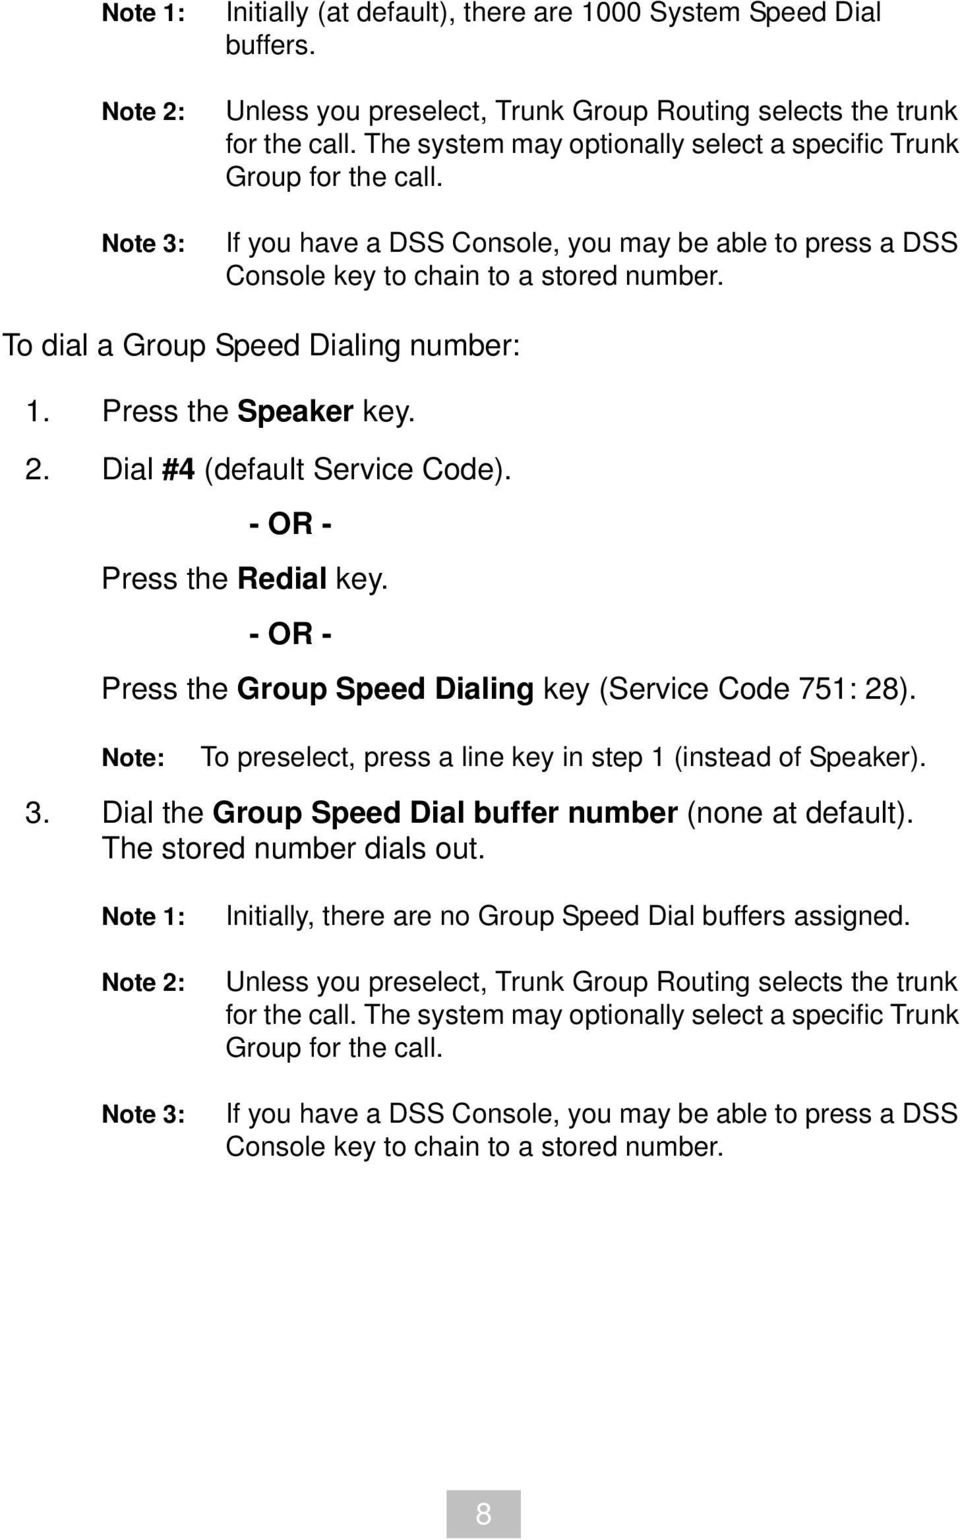 To dial a Group Speed Dialing number: 1. Press the Speaker key. 2. Dial #4 (default Service Code). Press the Redial key. Press the Group Speed Dialing key (Service Code 751: 28).